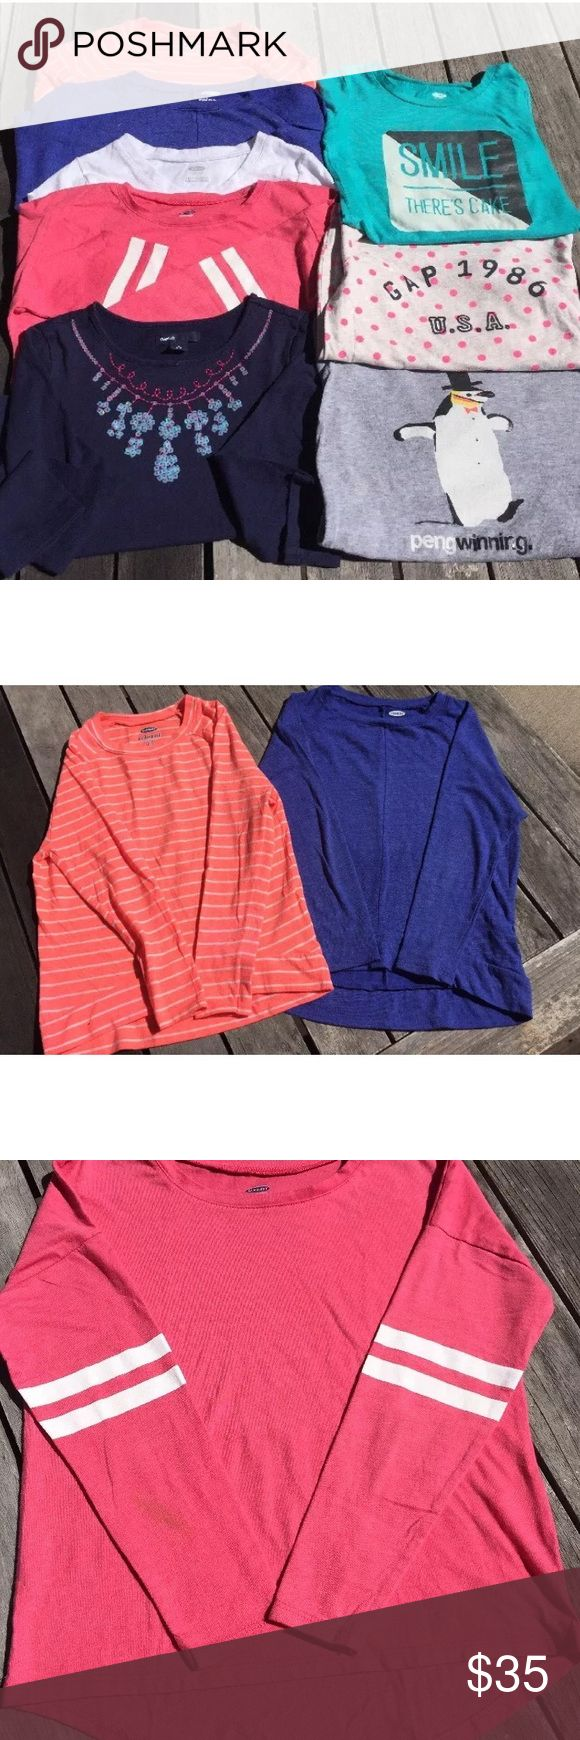 Lot Of 8 Girls Size 6/7 Long Sleeve Shirts Tops Pink old navy with stripes on the sleeves has a small stain on back of right sleeve White old navy has a small stain on front  Blue one has a small stain on front and some piling  Navy Gap Kids with jewels has some fading due to washing. All jewels are in tact. Pengwinning Old Navy - the penguin is a little faded due to washing  Gap 1986 USA - GapKids has some piling and fading due to washing Smile There's Cake - Old Navy, some piling due to…